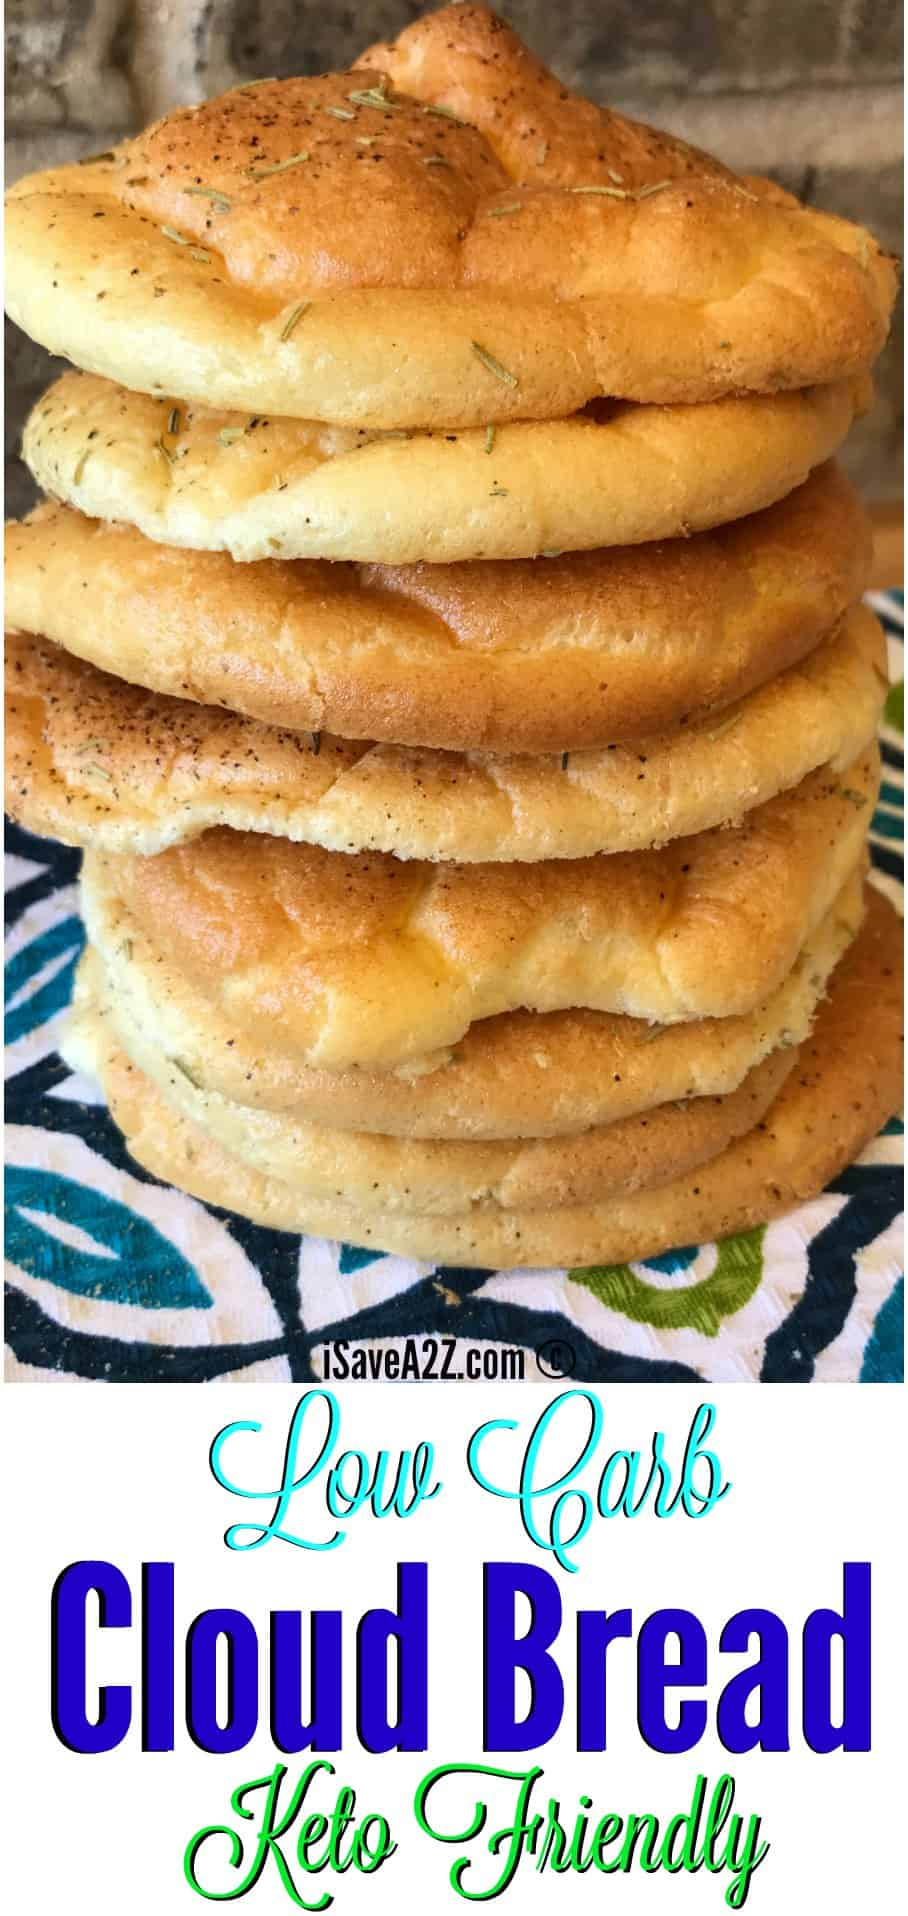 Low Carb Cloud Bread Recipe Made with Baking Soda